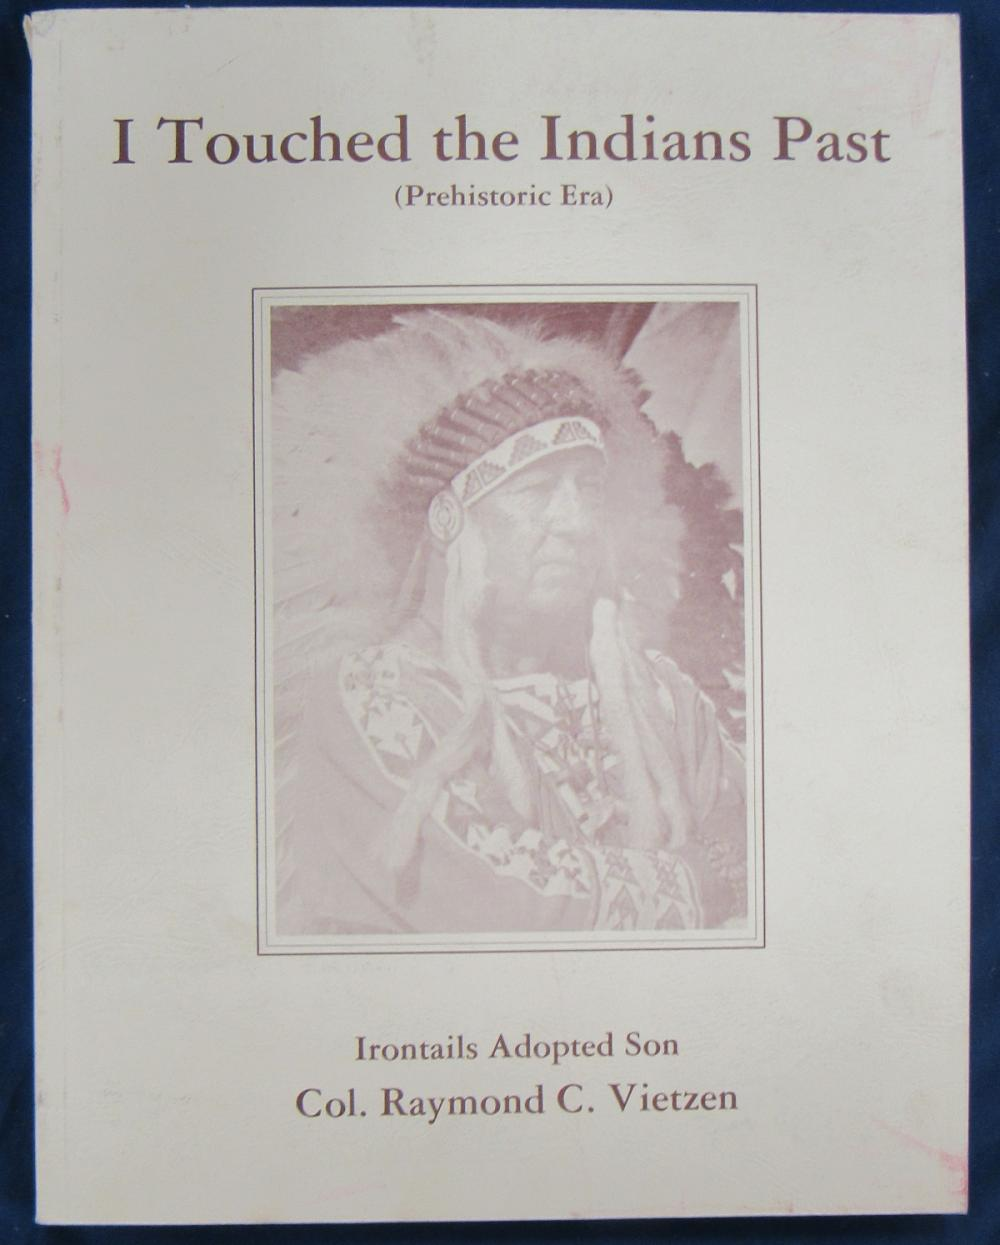 Col. Vietzen HTF I Touched the Indians Past Book, EC